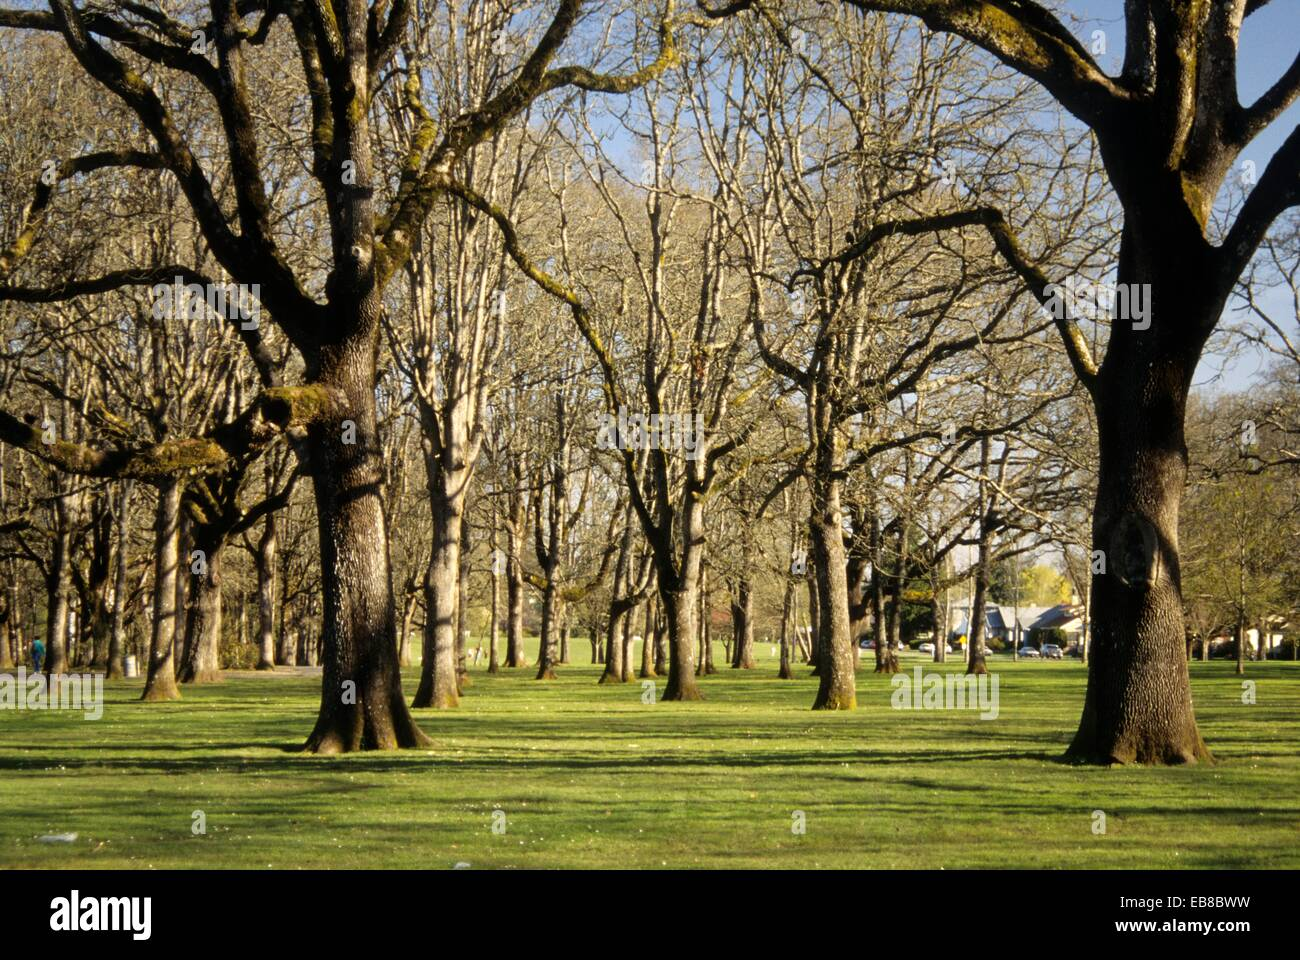 Oak grove, Bushs Pasture Park, Salem, Oregon - Stock Image